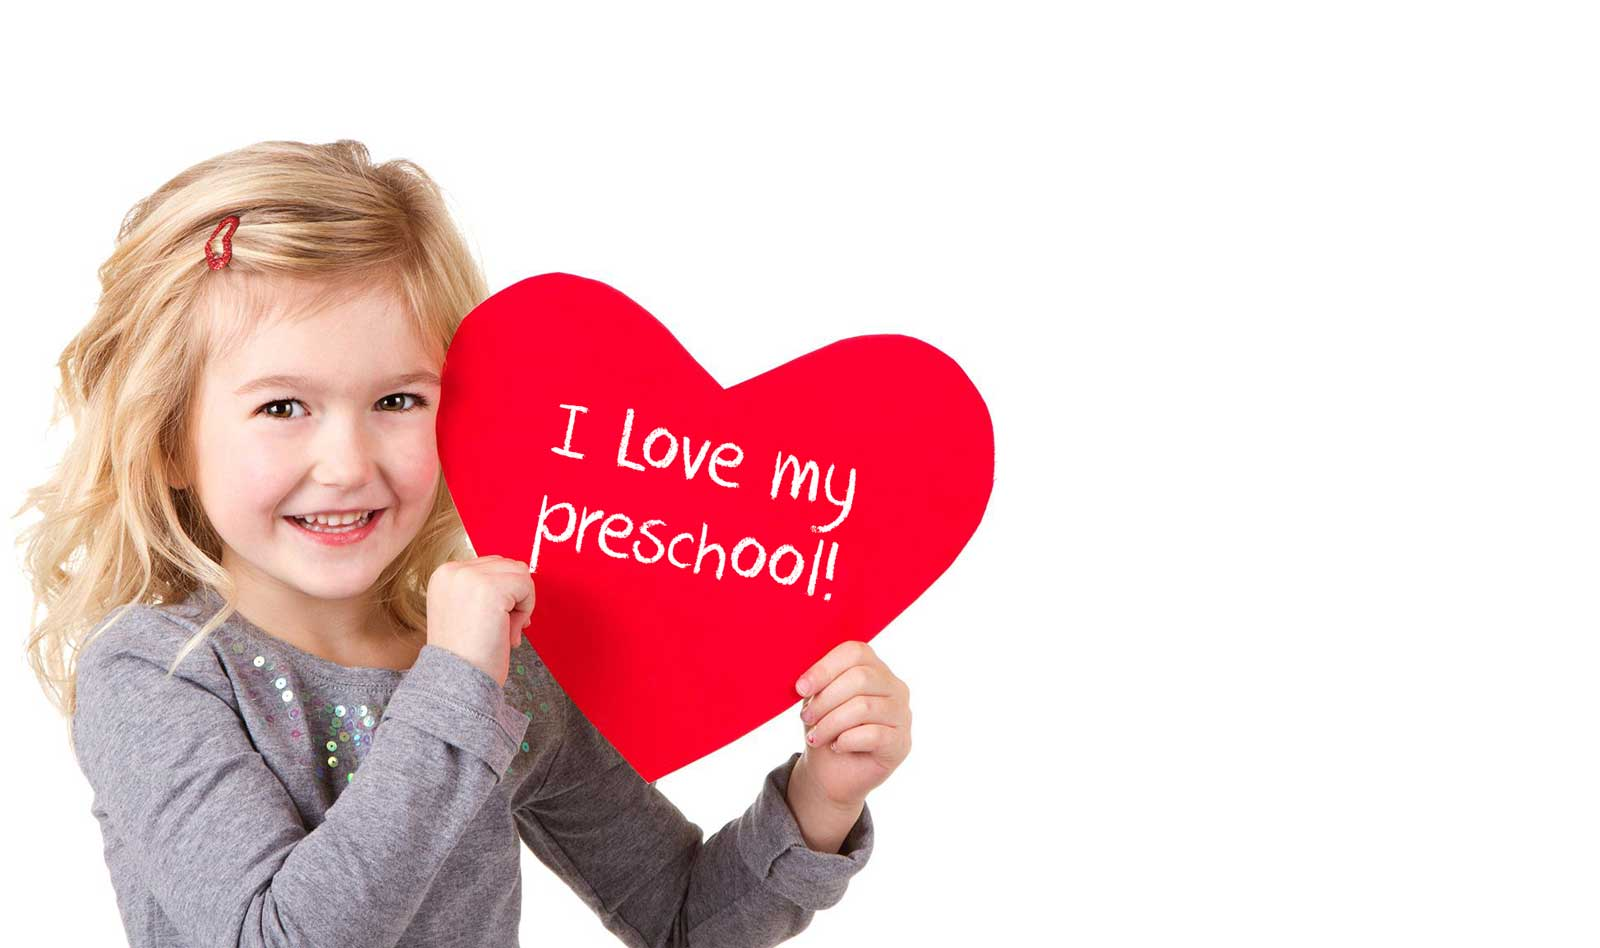 Preschool Queen Creek Arizona